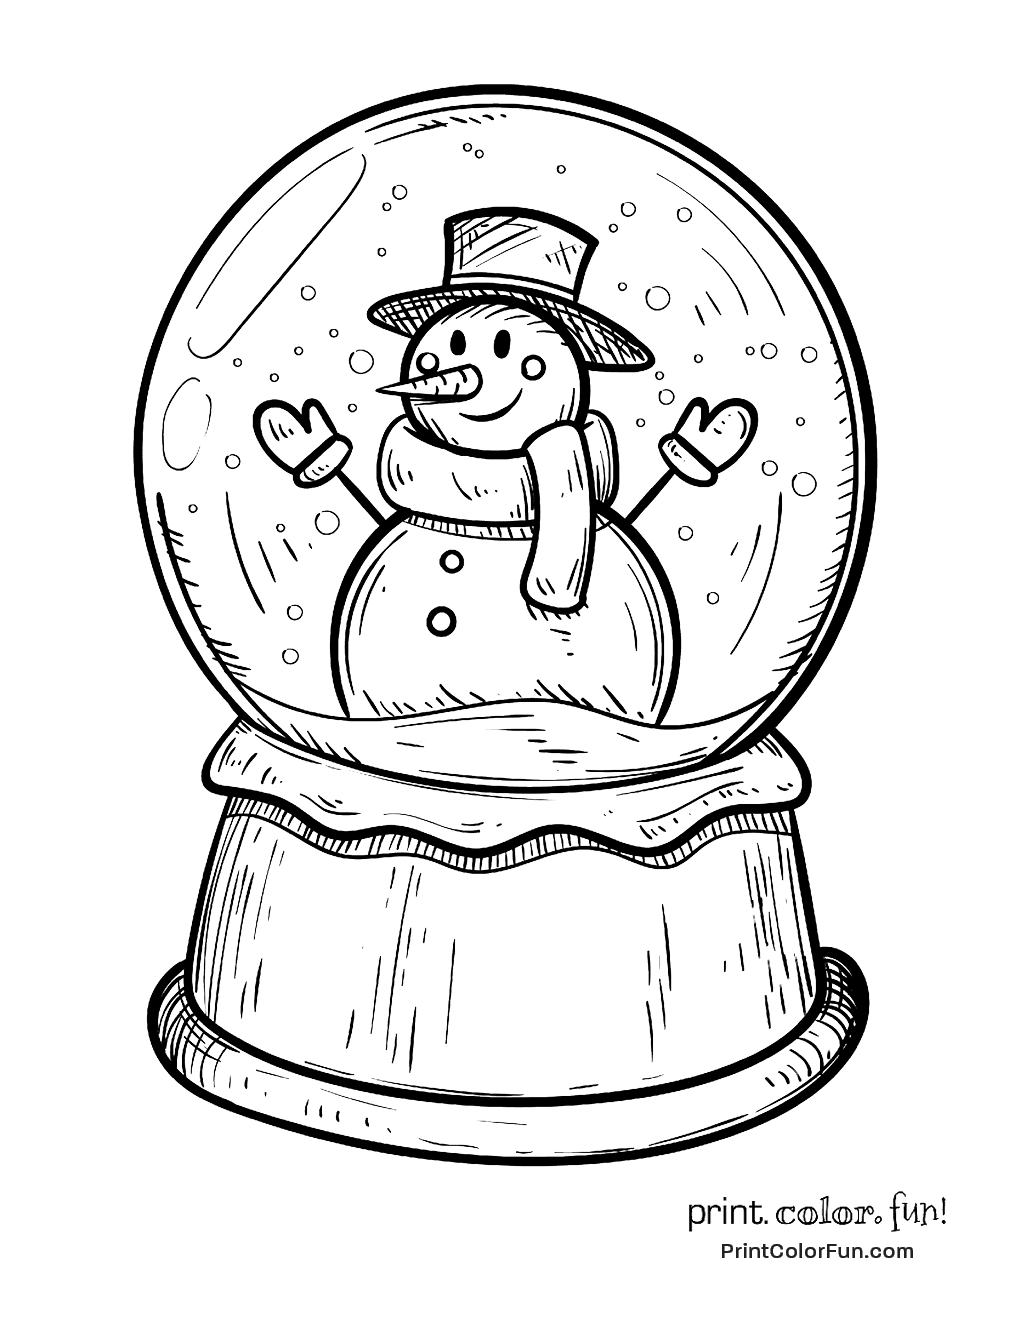 Winter snow globe with snowman coloring page print color fun gumiabroncs Images